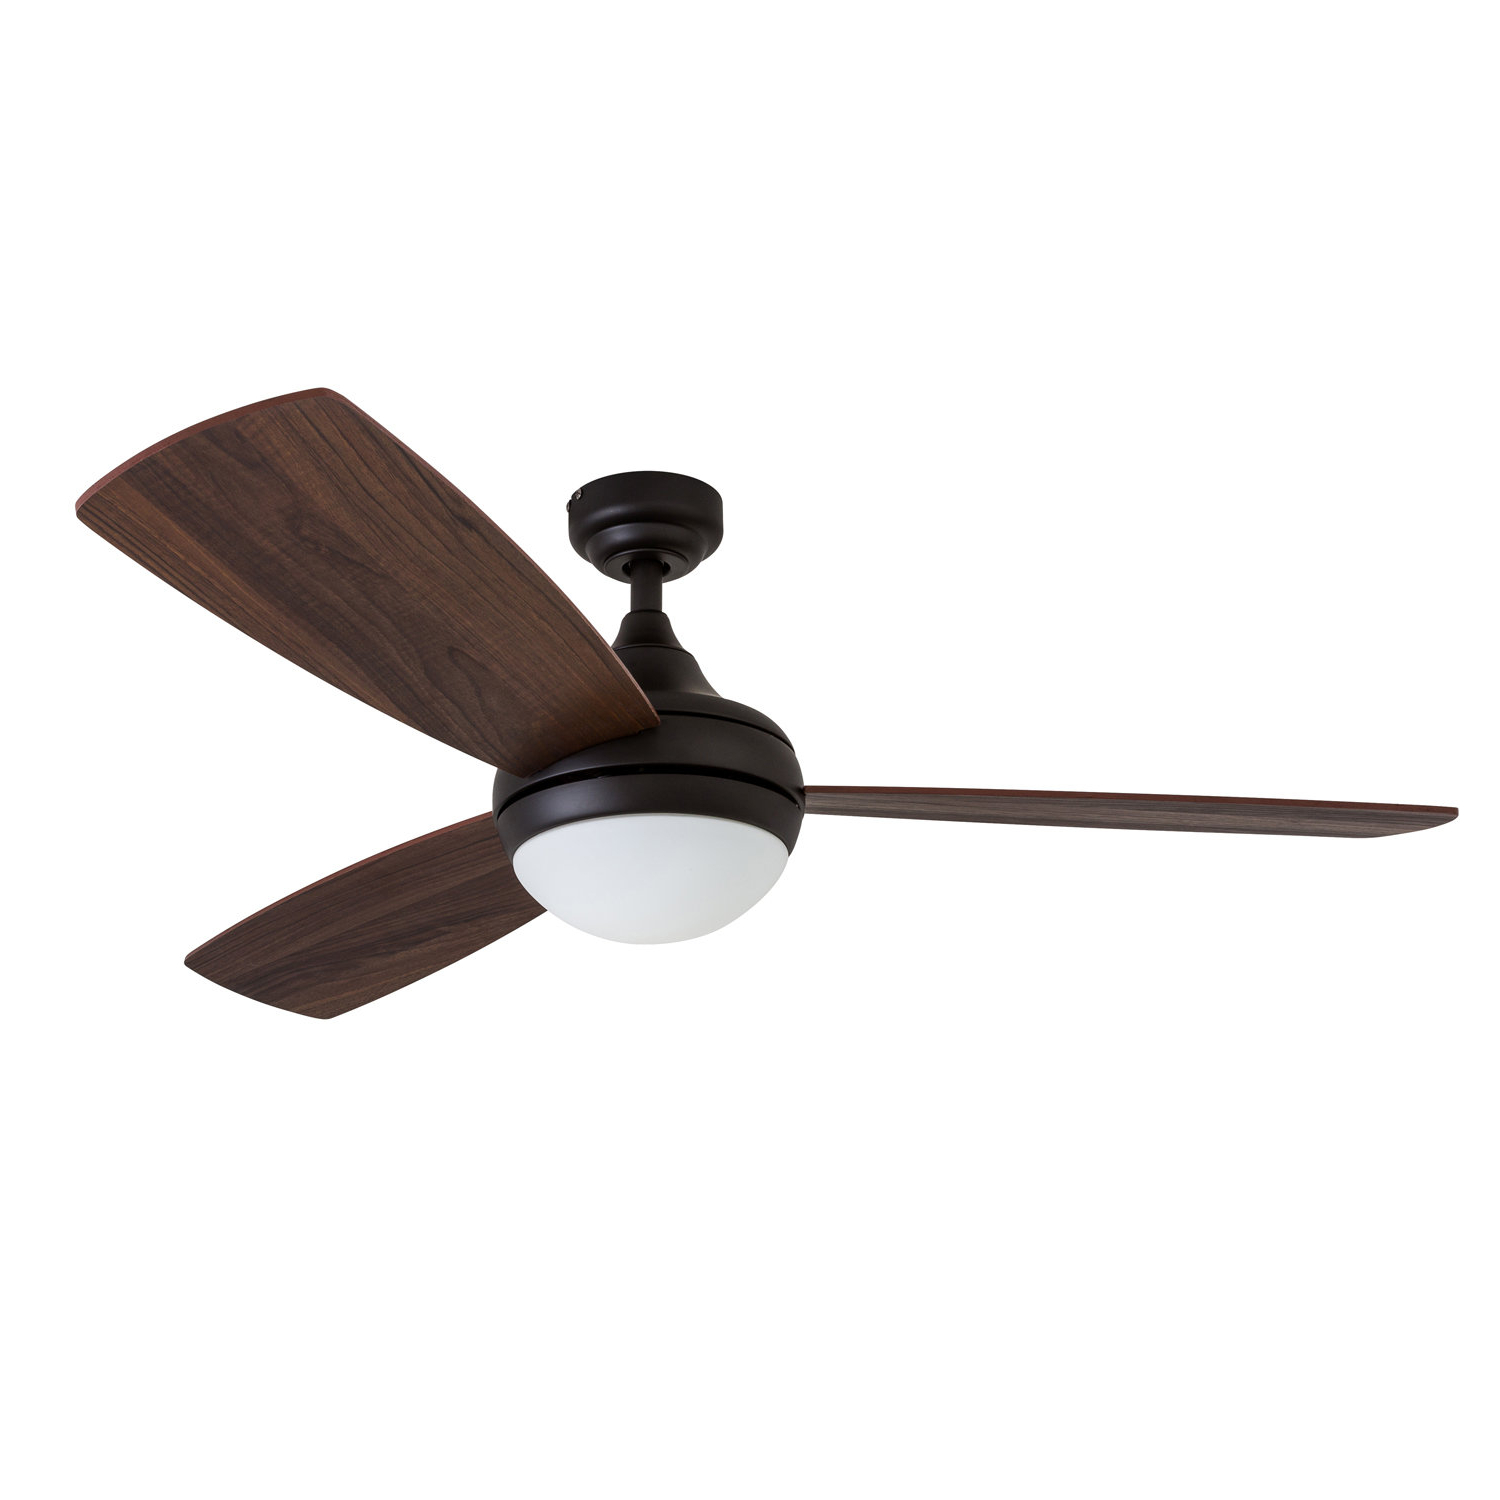 Allmodern Intended For Preferred Embrace 3 Blade Ceiling Fans (View 4 of 20)